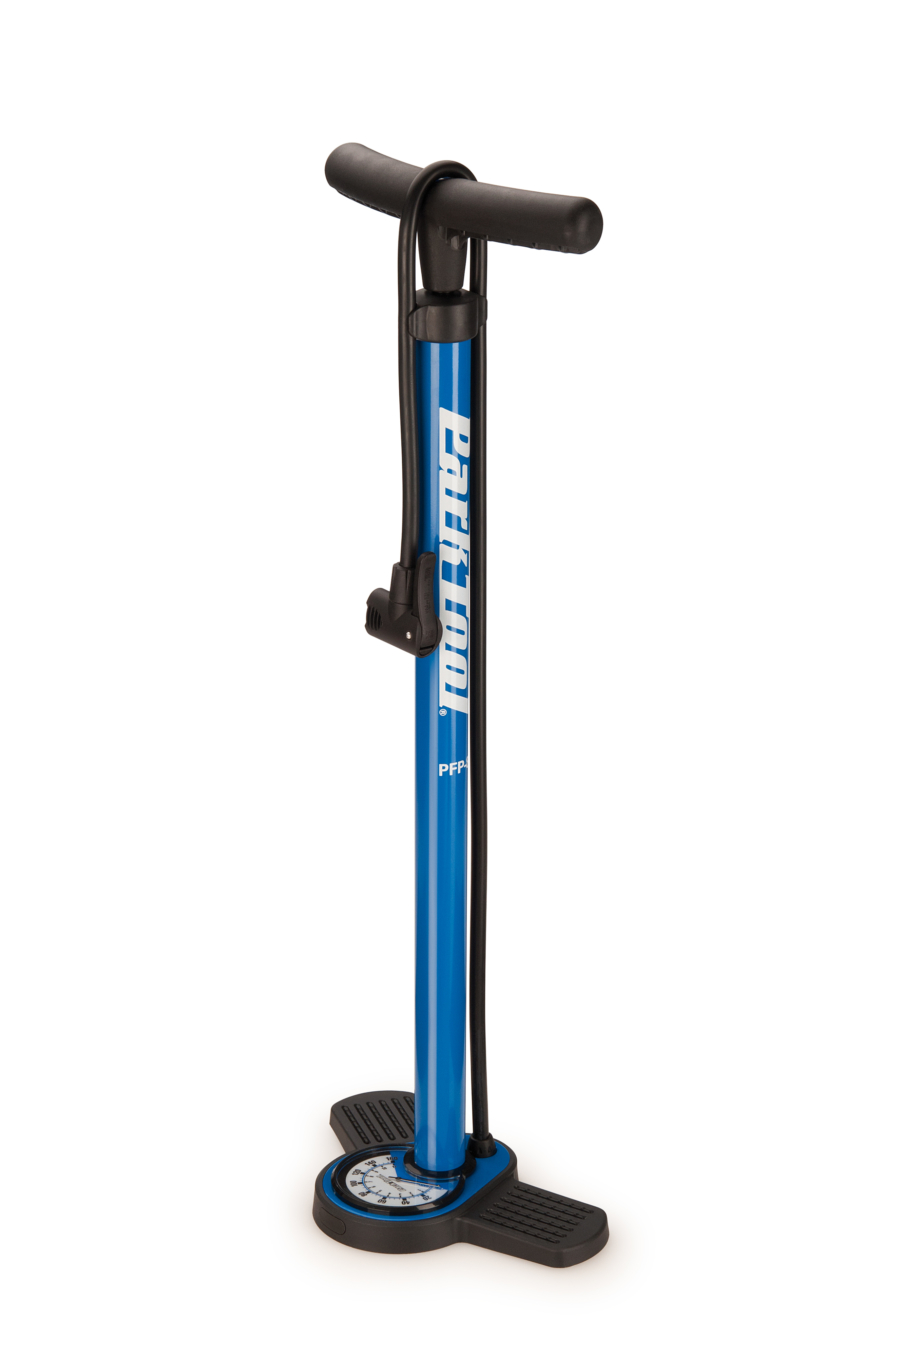 The Park Tool PFP-8 Home Mechanic Floor Pump, enlarged